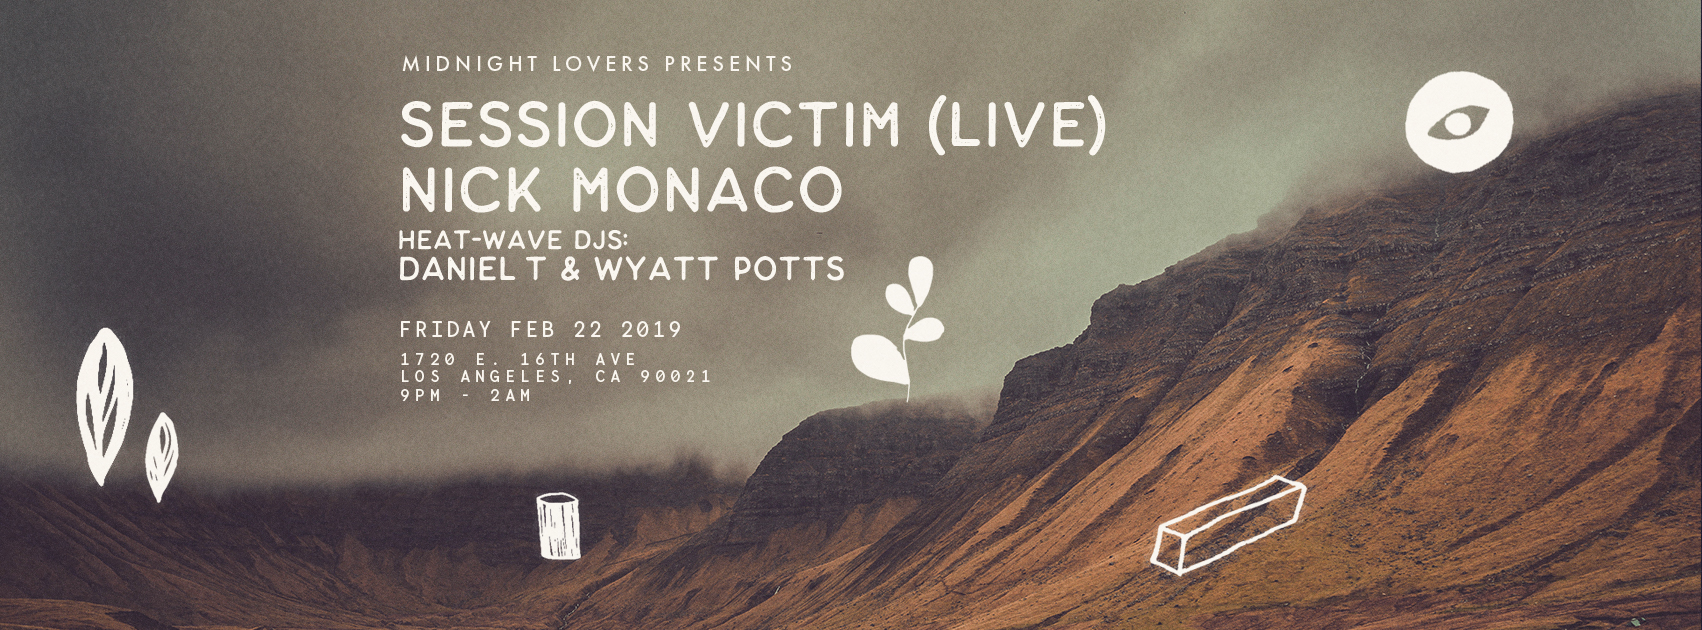 Midnight Lovers w/ Session Victim (live) + Nick Monaco  1720 • Friday, February 22nd  •   DISCOUNTED TICKET     •